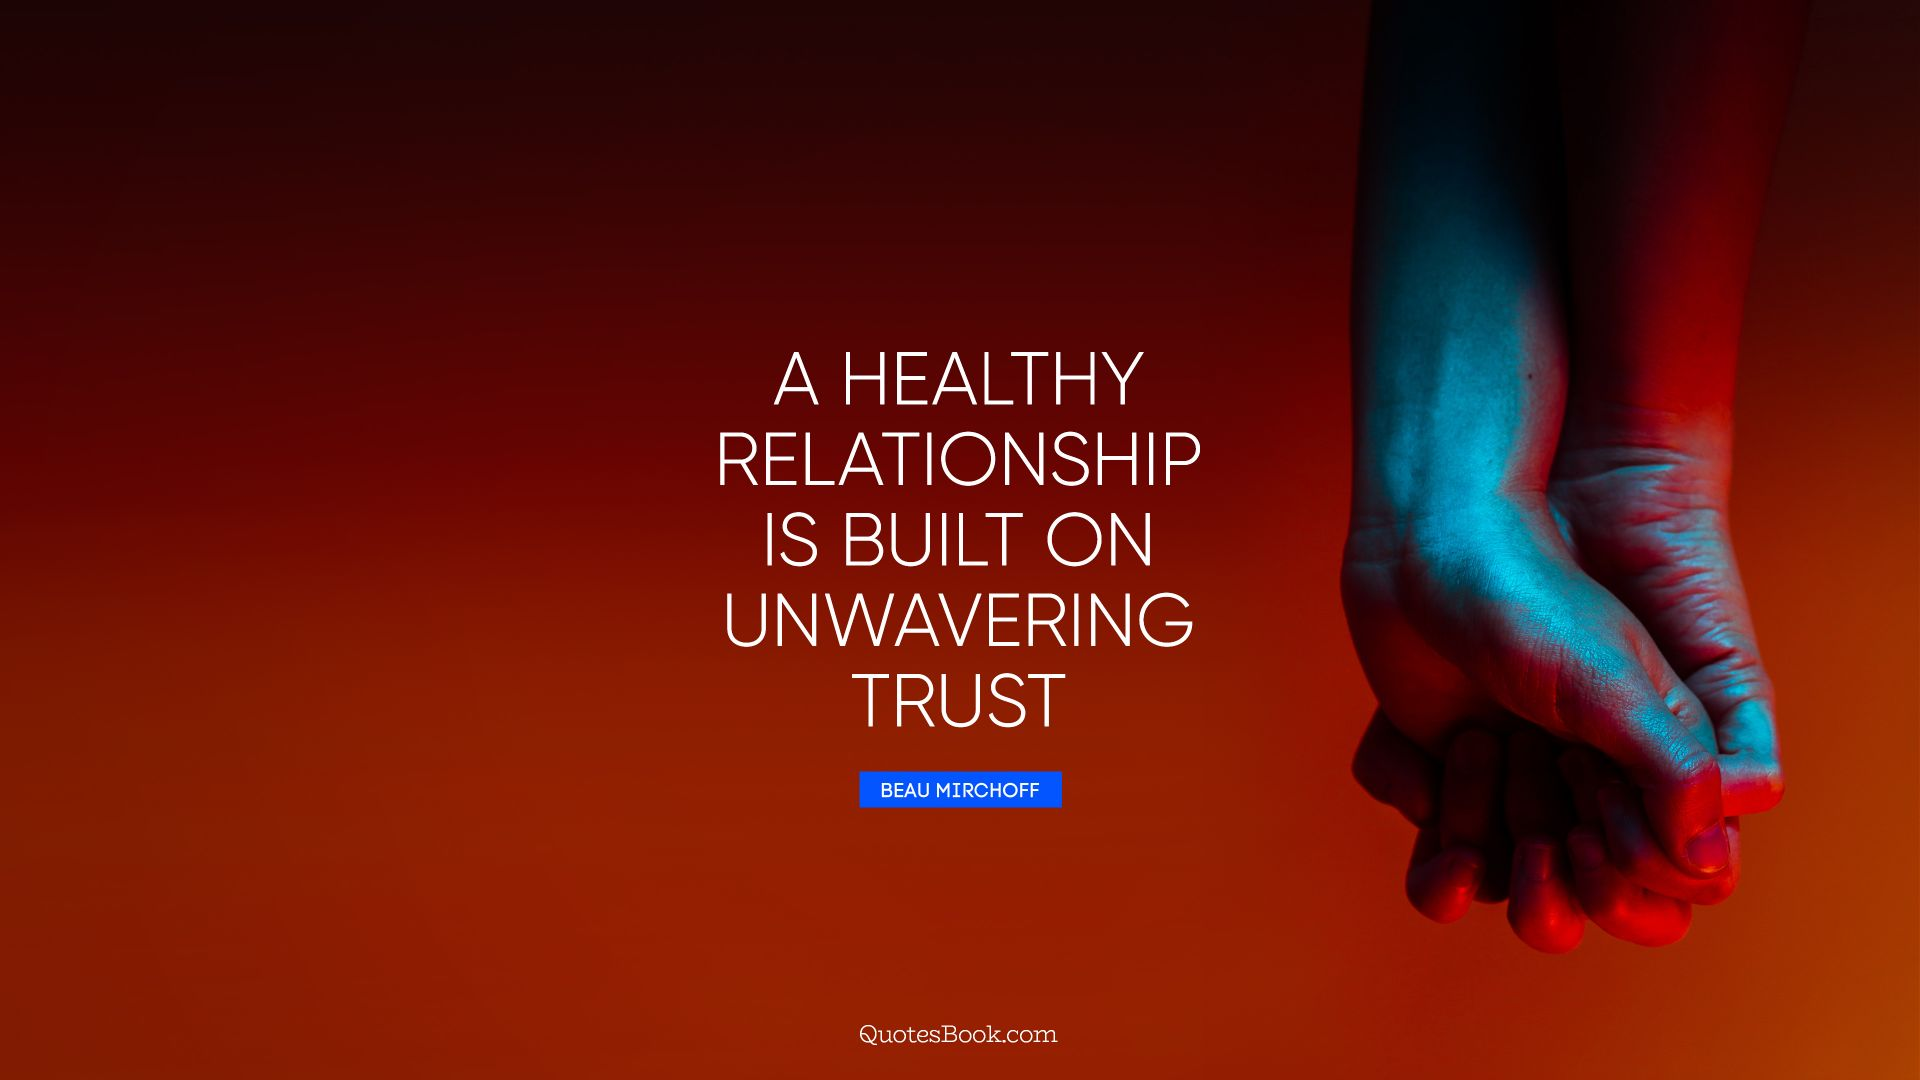 A healthy relationship is built on unwavering trust. - Quote by Beau Mirchoff